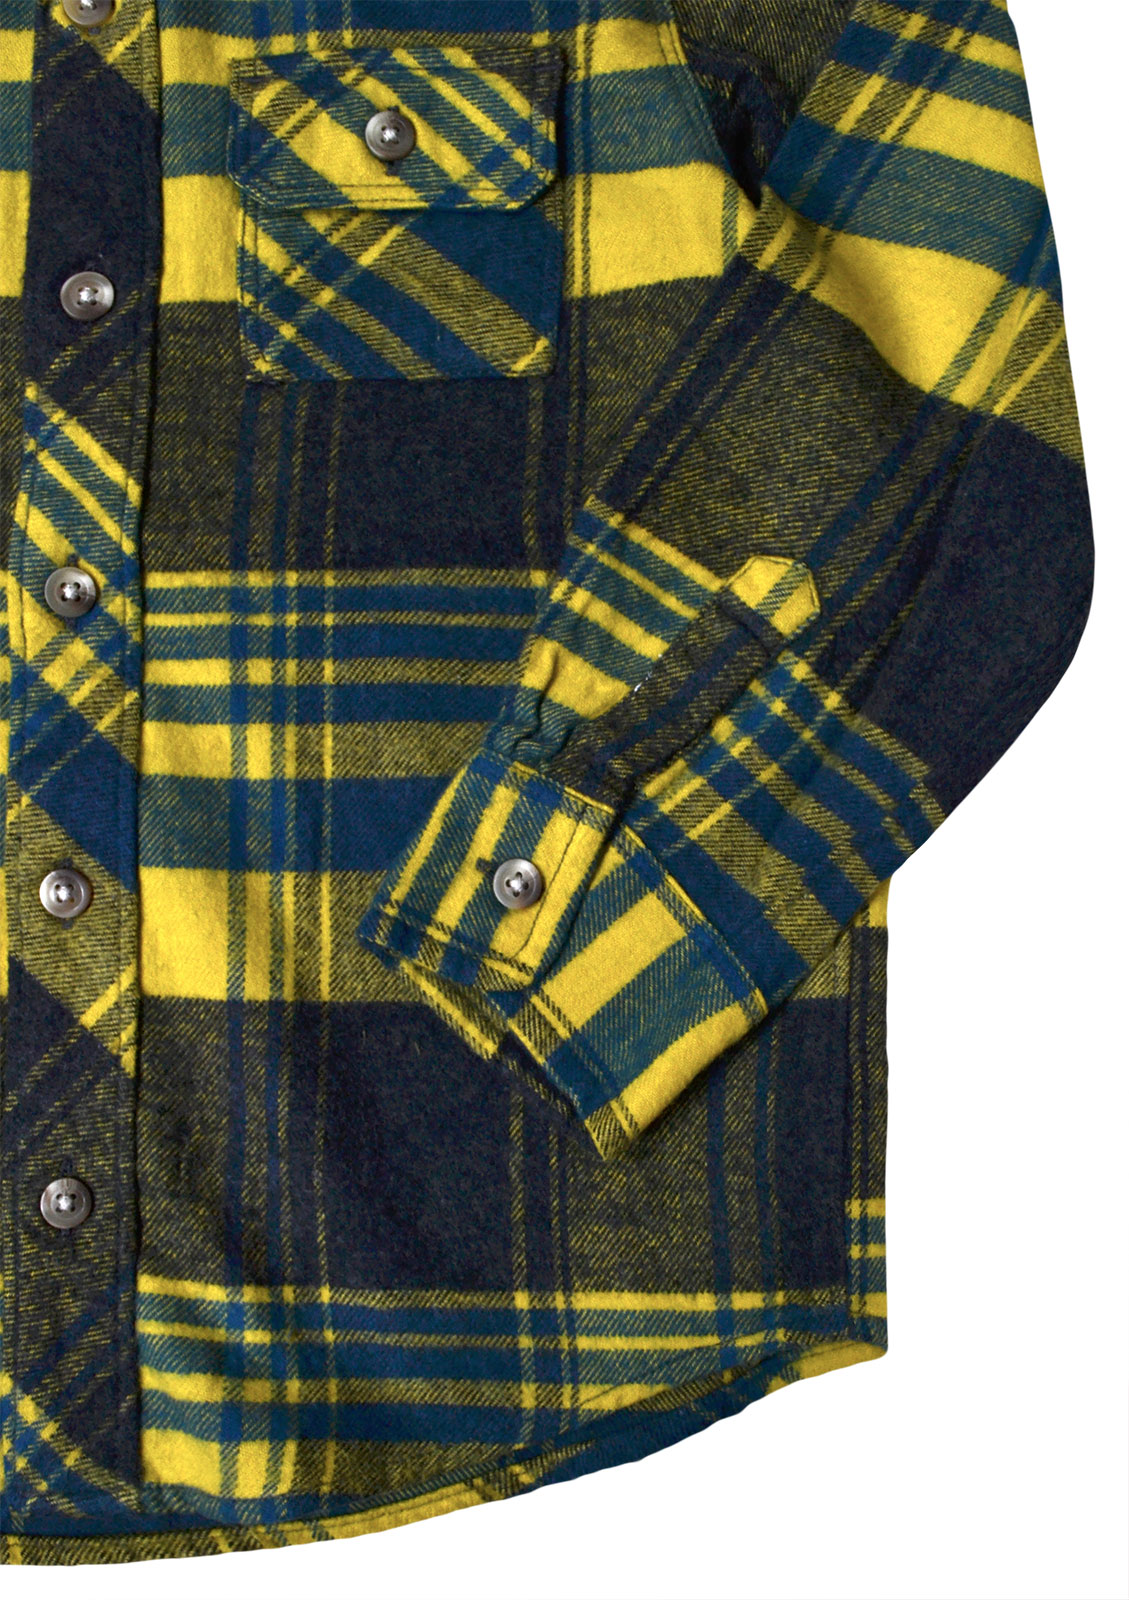 Boys-Ex-GAP-Shirt-Boy-Long-Sleeve-Cotton-Top-Check-Blouse-Ages-2-3-4-5-6-Years thumbnail 5